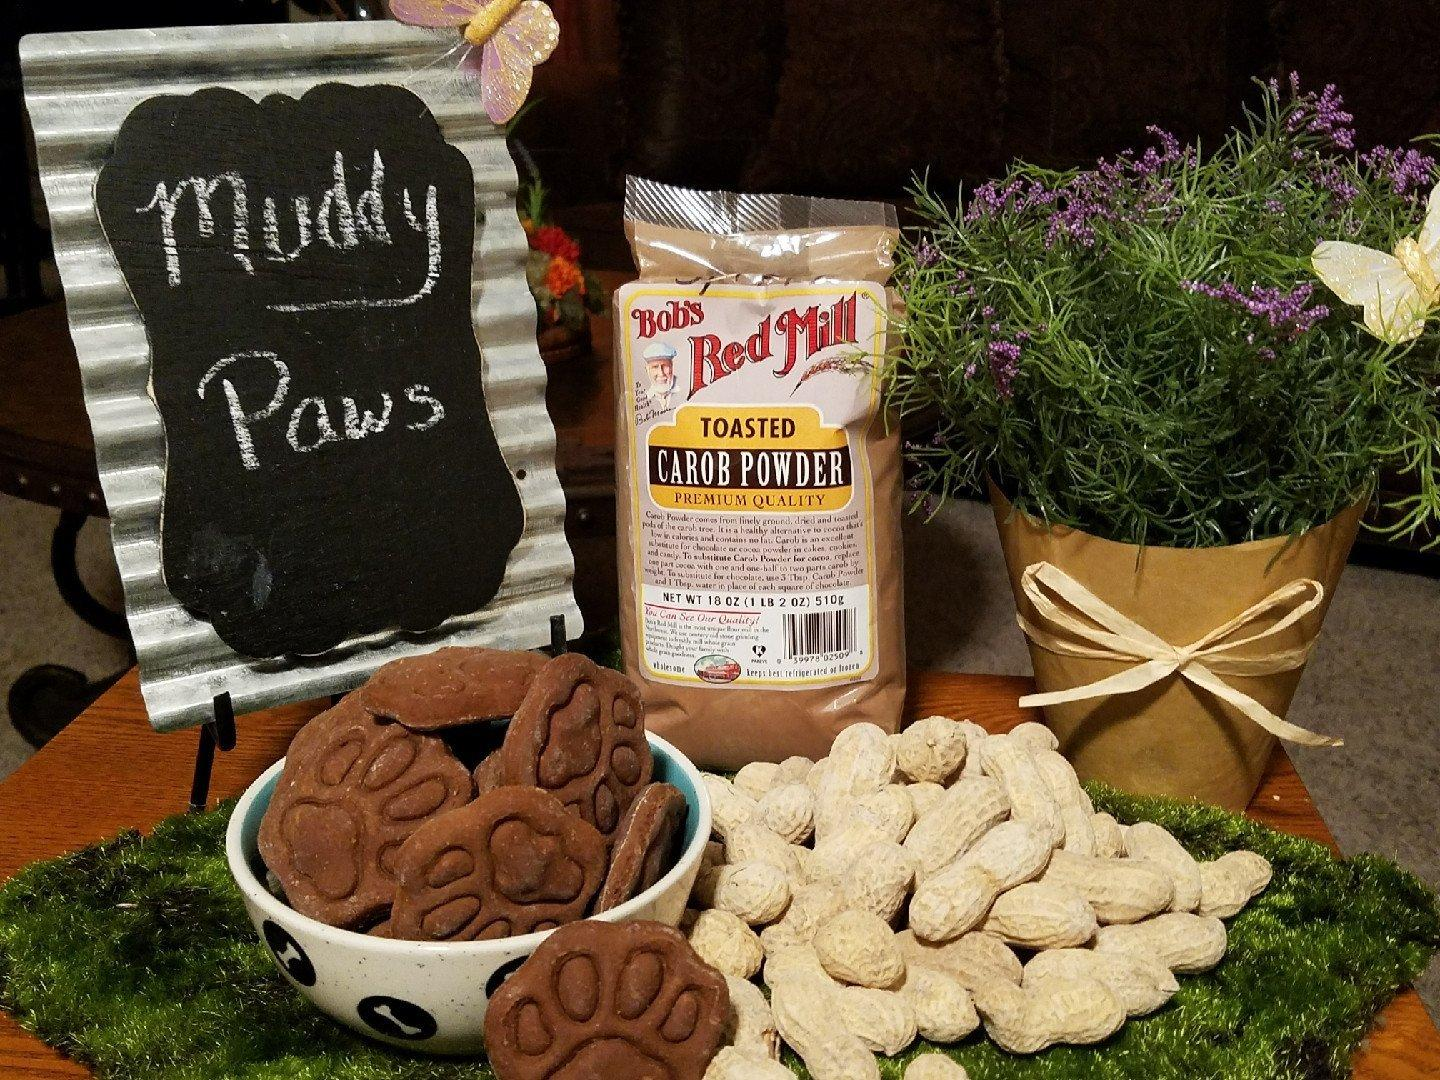 Muddy paws.  A wonderful combination of Carob and Peanut butter.  The taste of chocolate without the caffeine  and theobromine that can harm them.